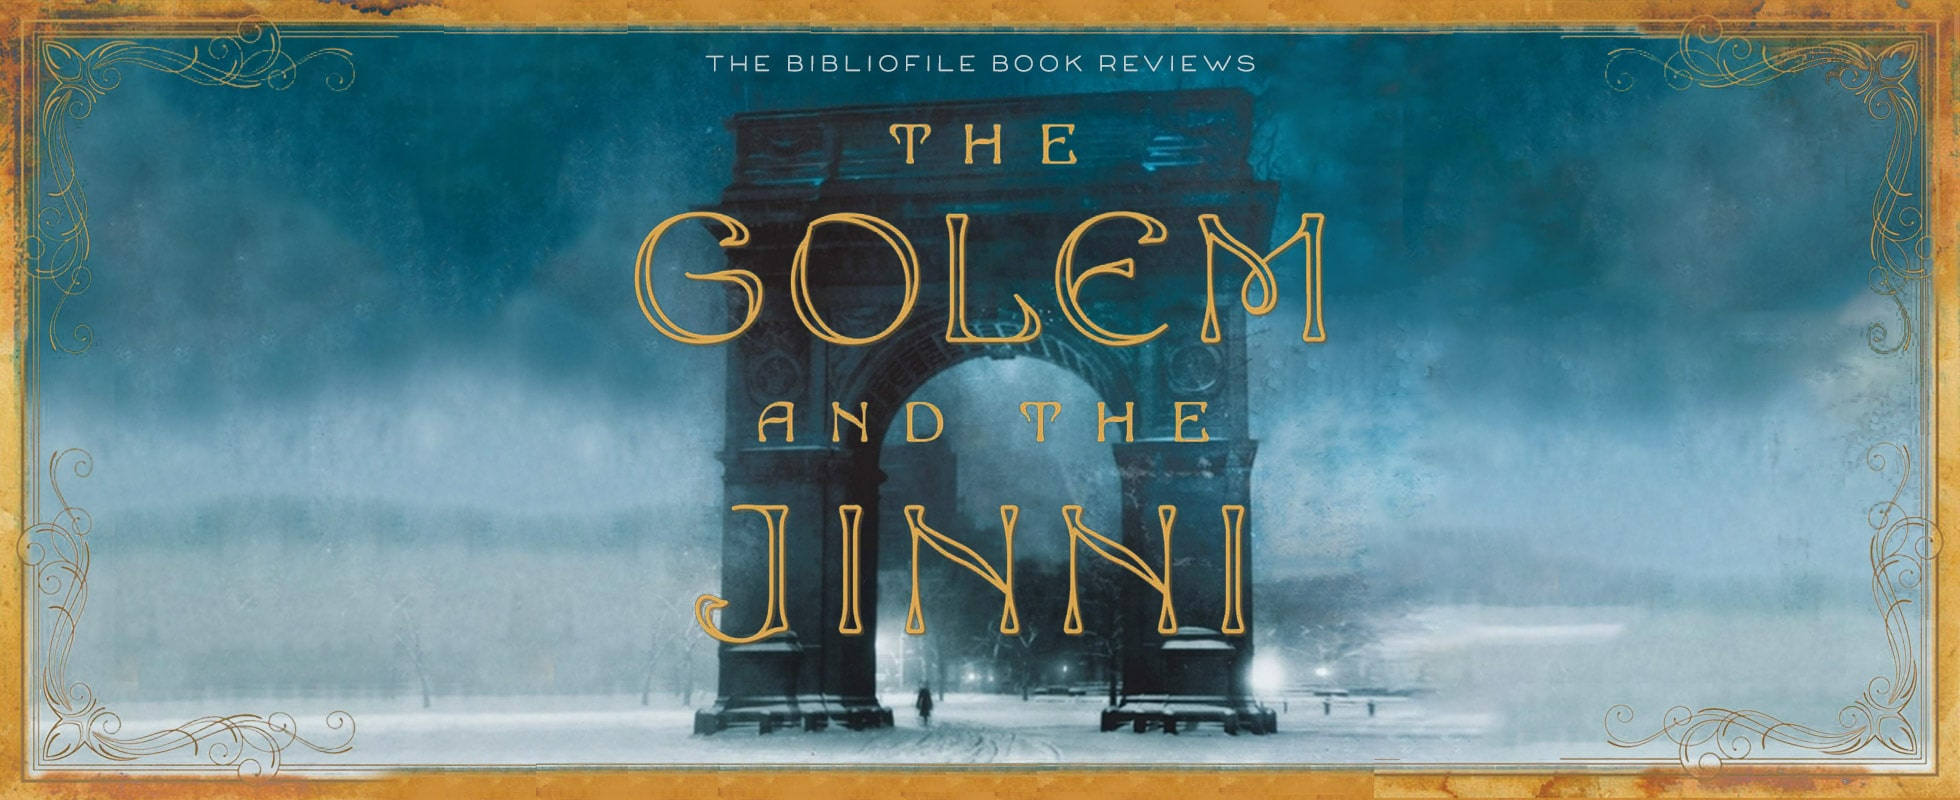 the golem and the jinni by helene wecker summary plot synopsis chapter by chapter detailed summary book review spoilers ending recap